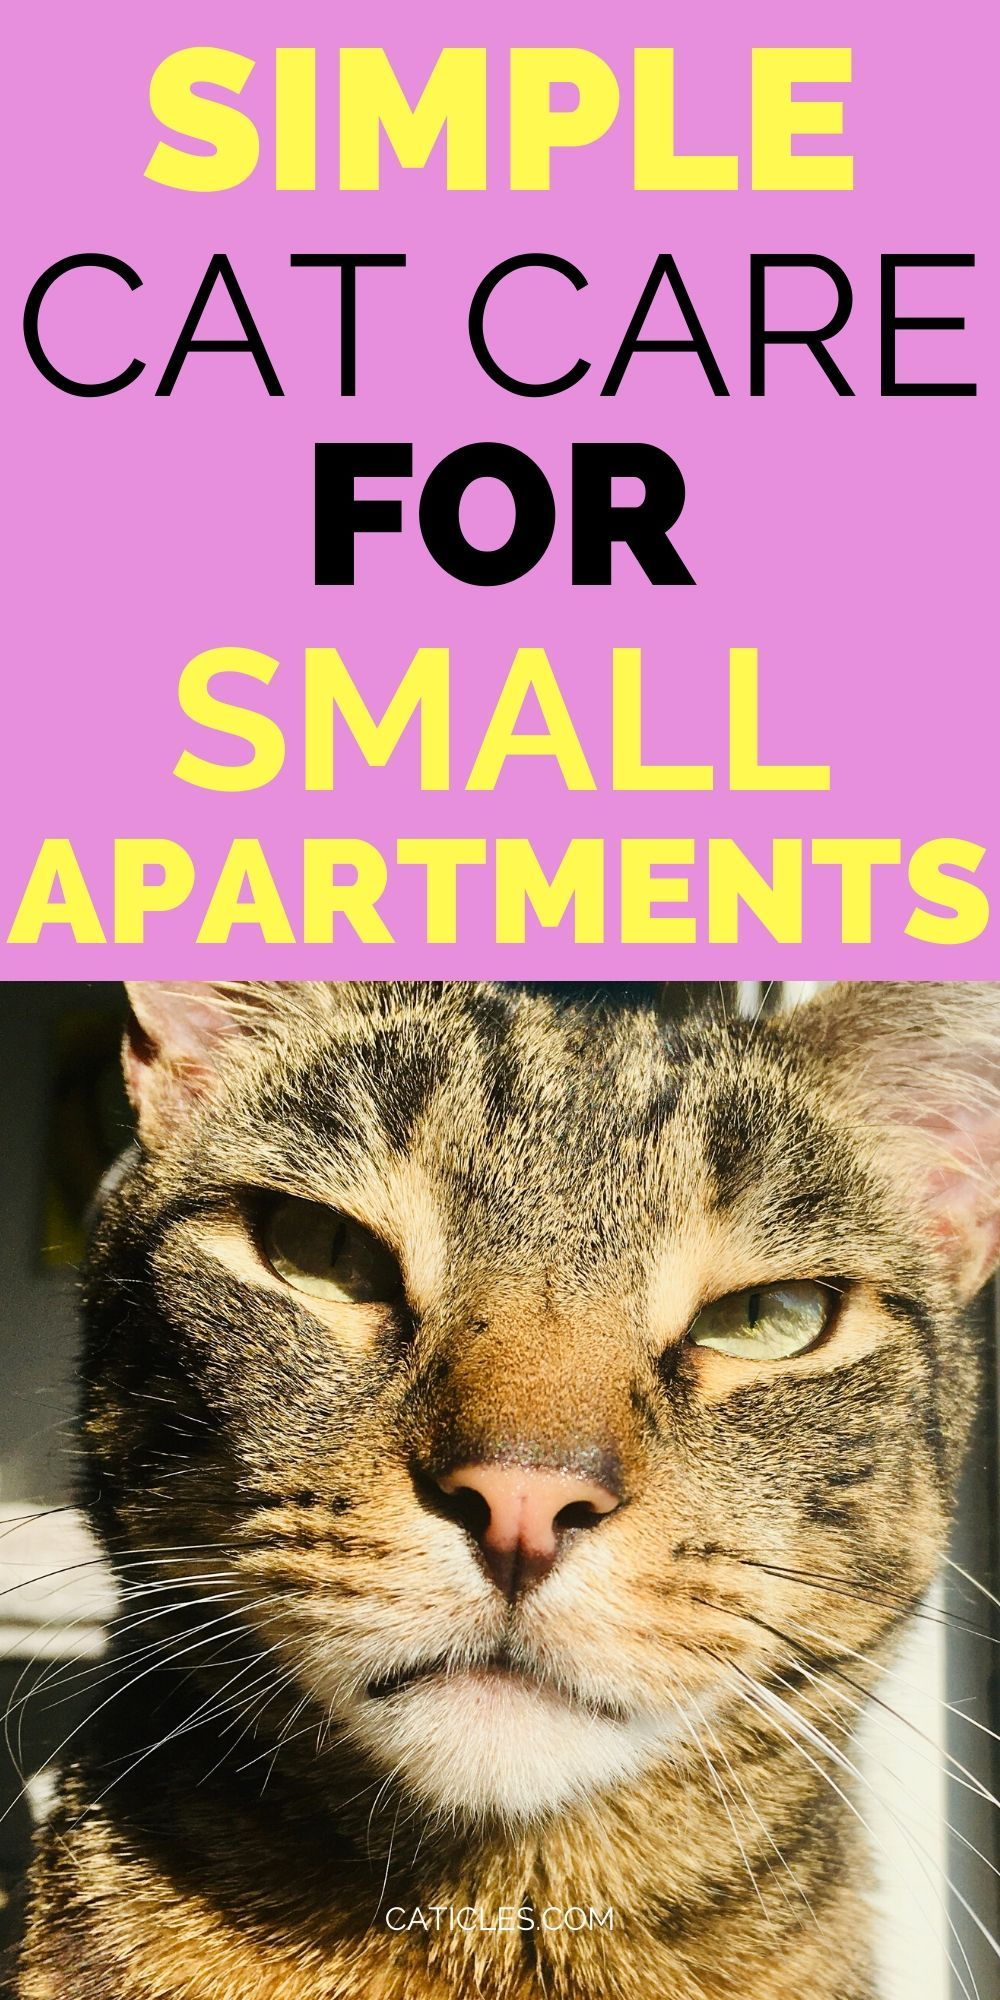 19 Ideas For Cats In Small Apartments You Ll Both Love Caticles In 2020 Cat Care Cat Life Hacks Small Apartment Cat